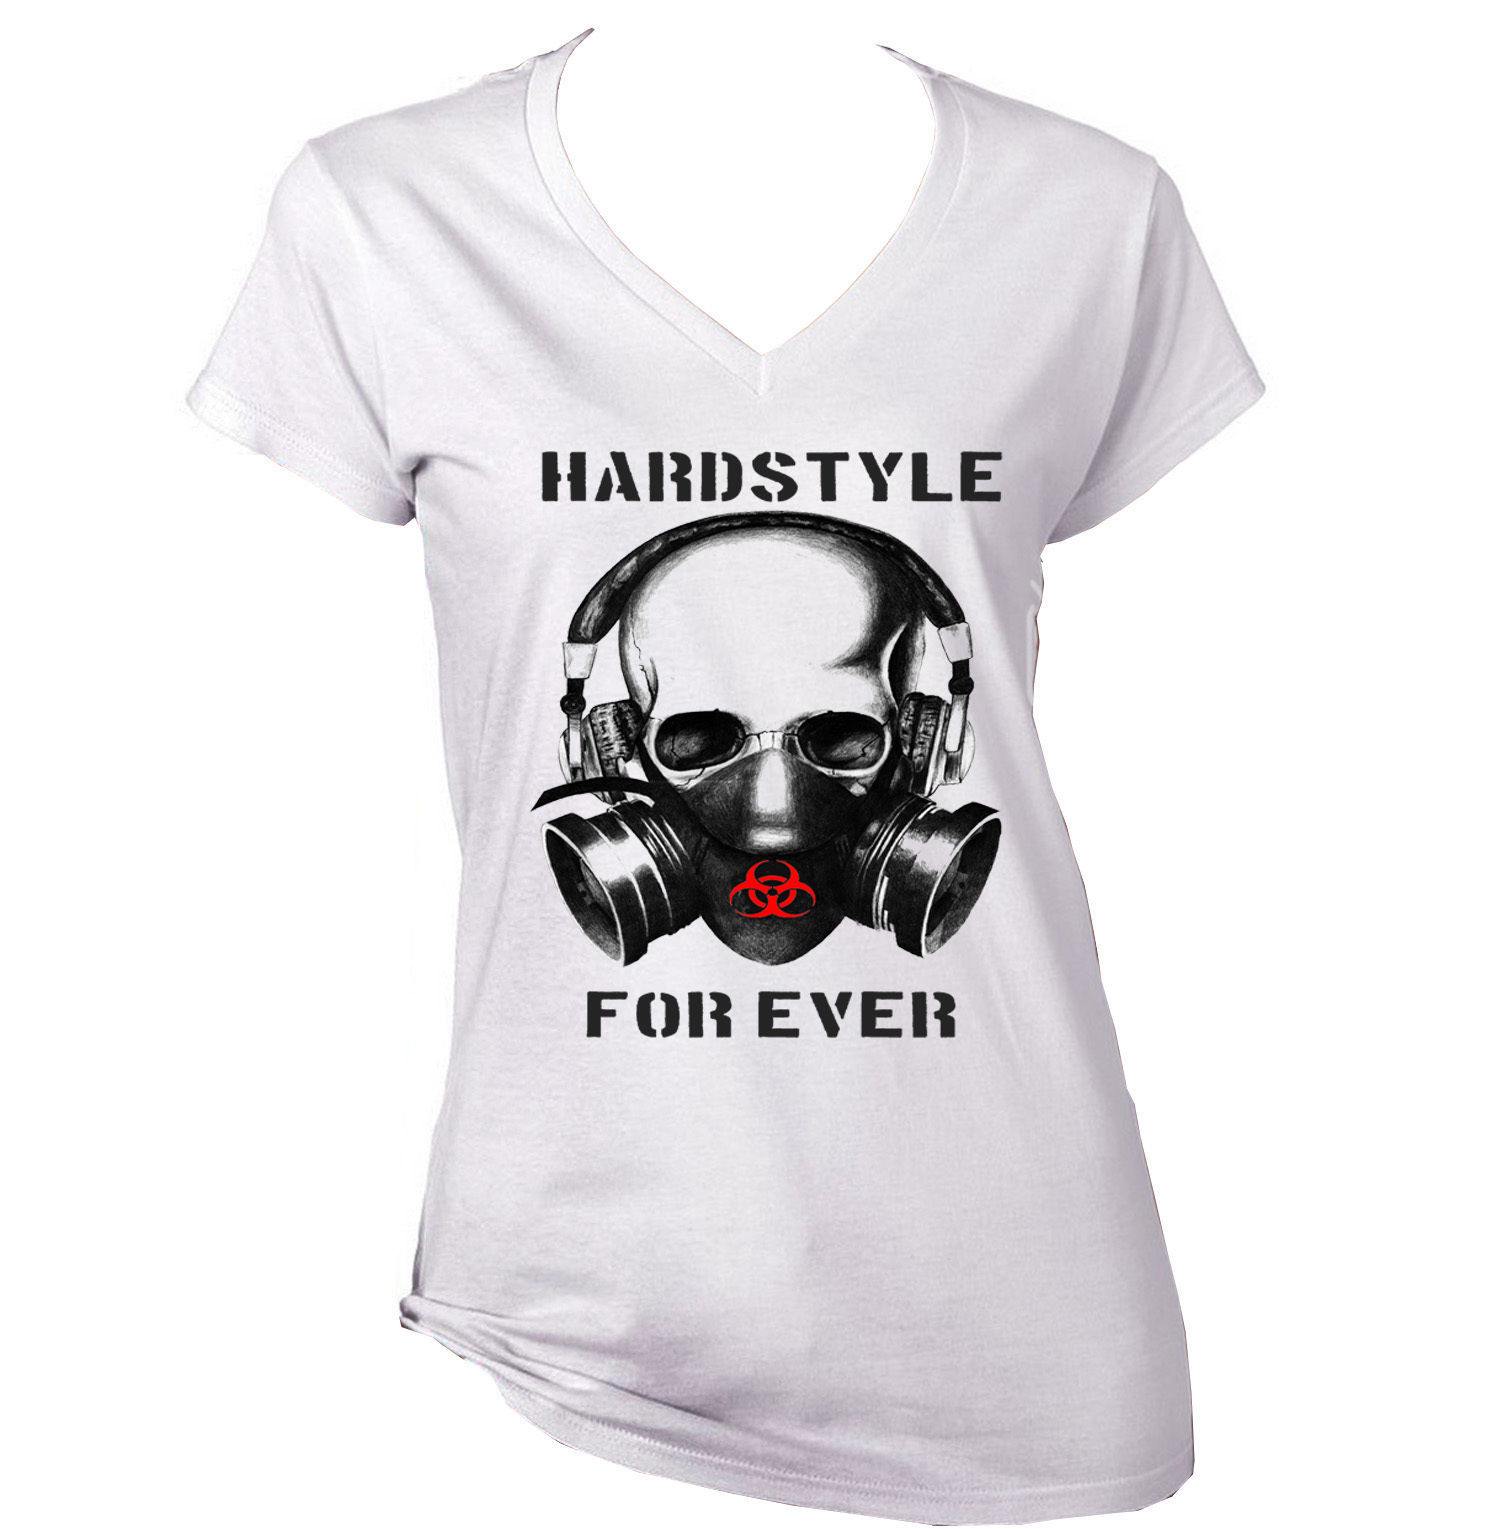 c58c9651 Hardstyle For Ever New Cotton White Lady and 40 similar items